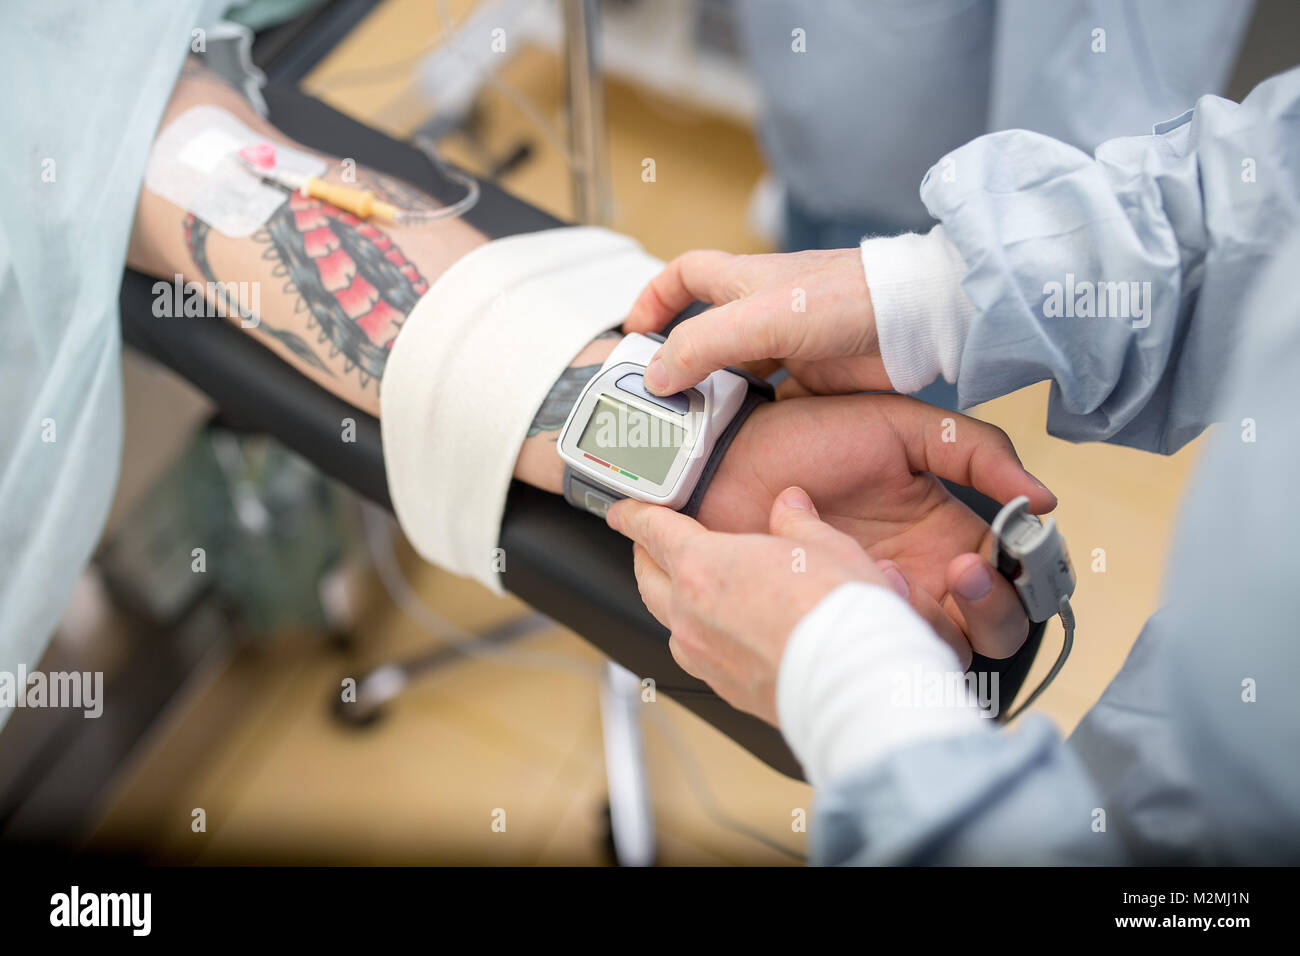 Doctor checking Blood Pressure of patient during surgery. medicine, surgery, resuscitation, emergency concept. Close - Stock Image